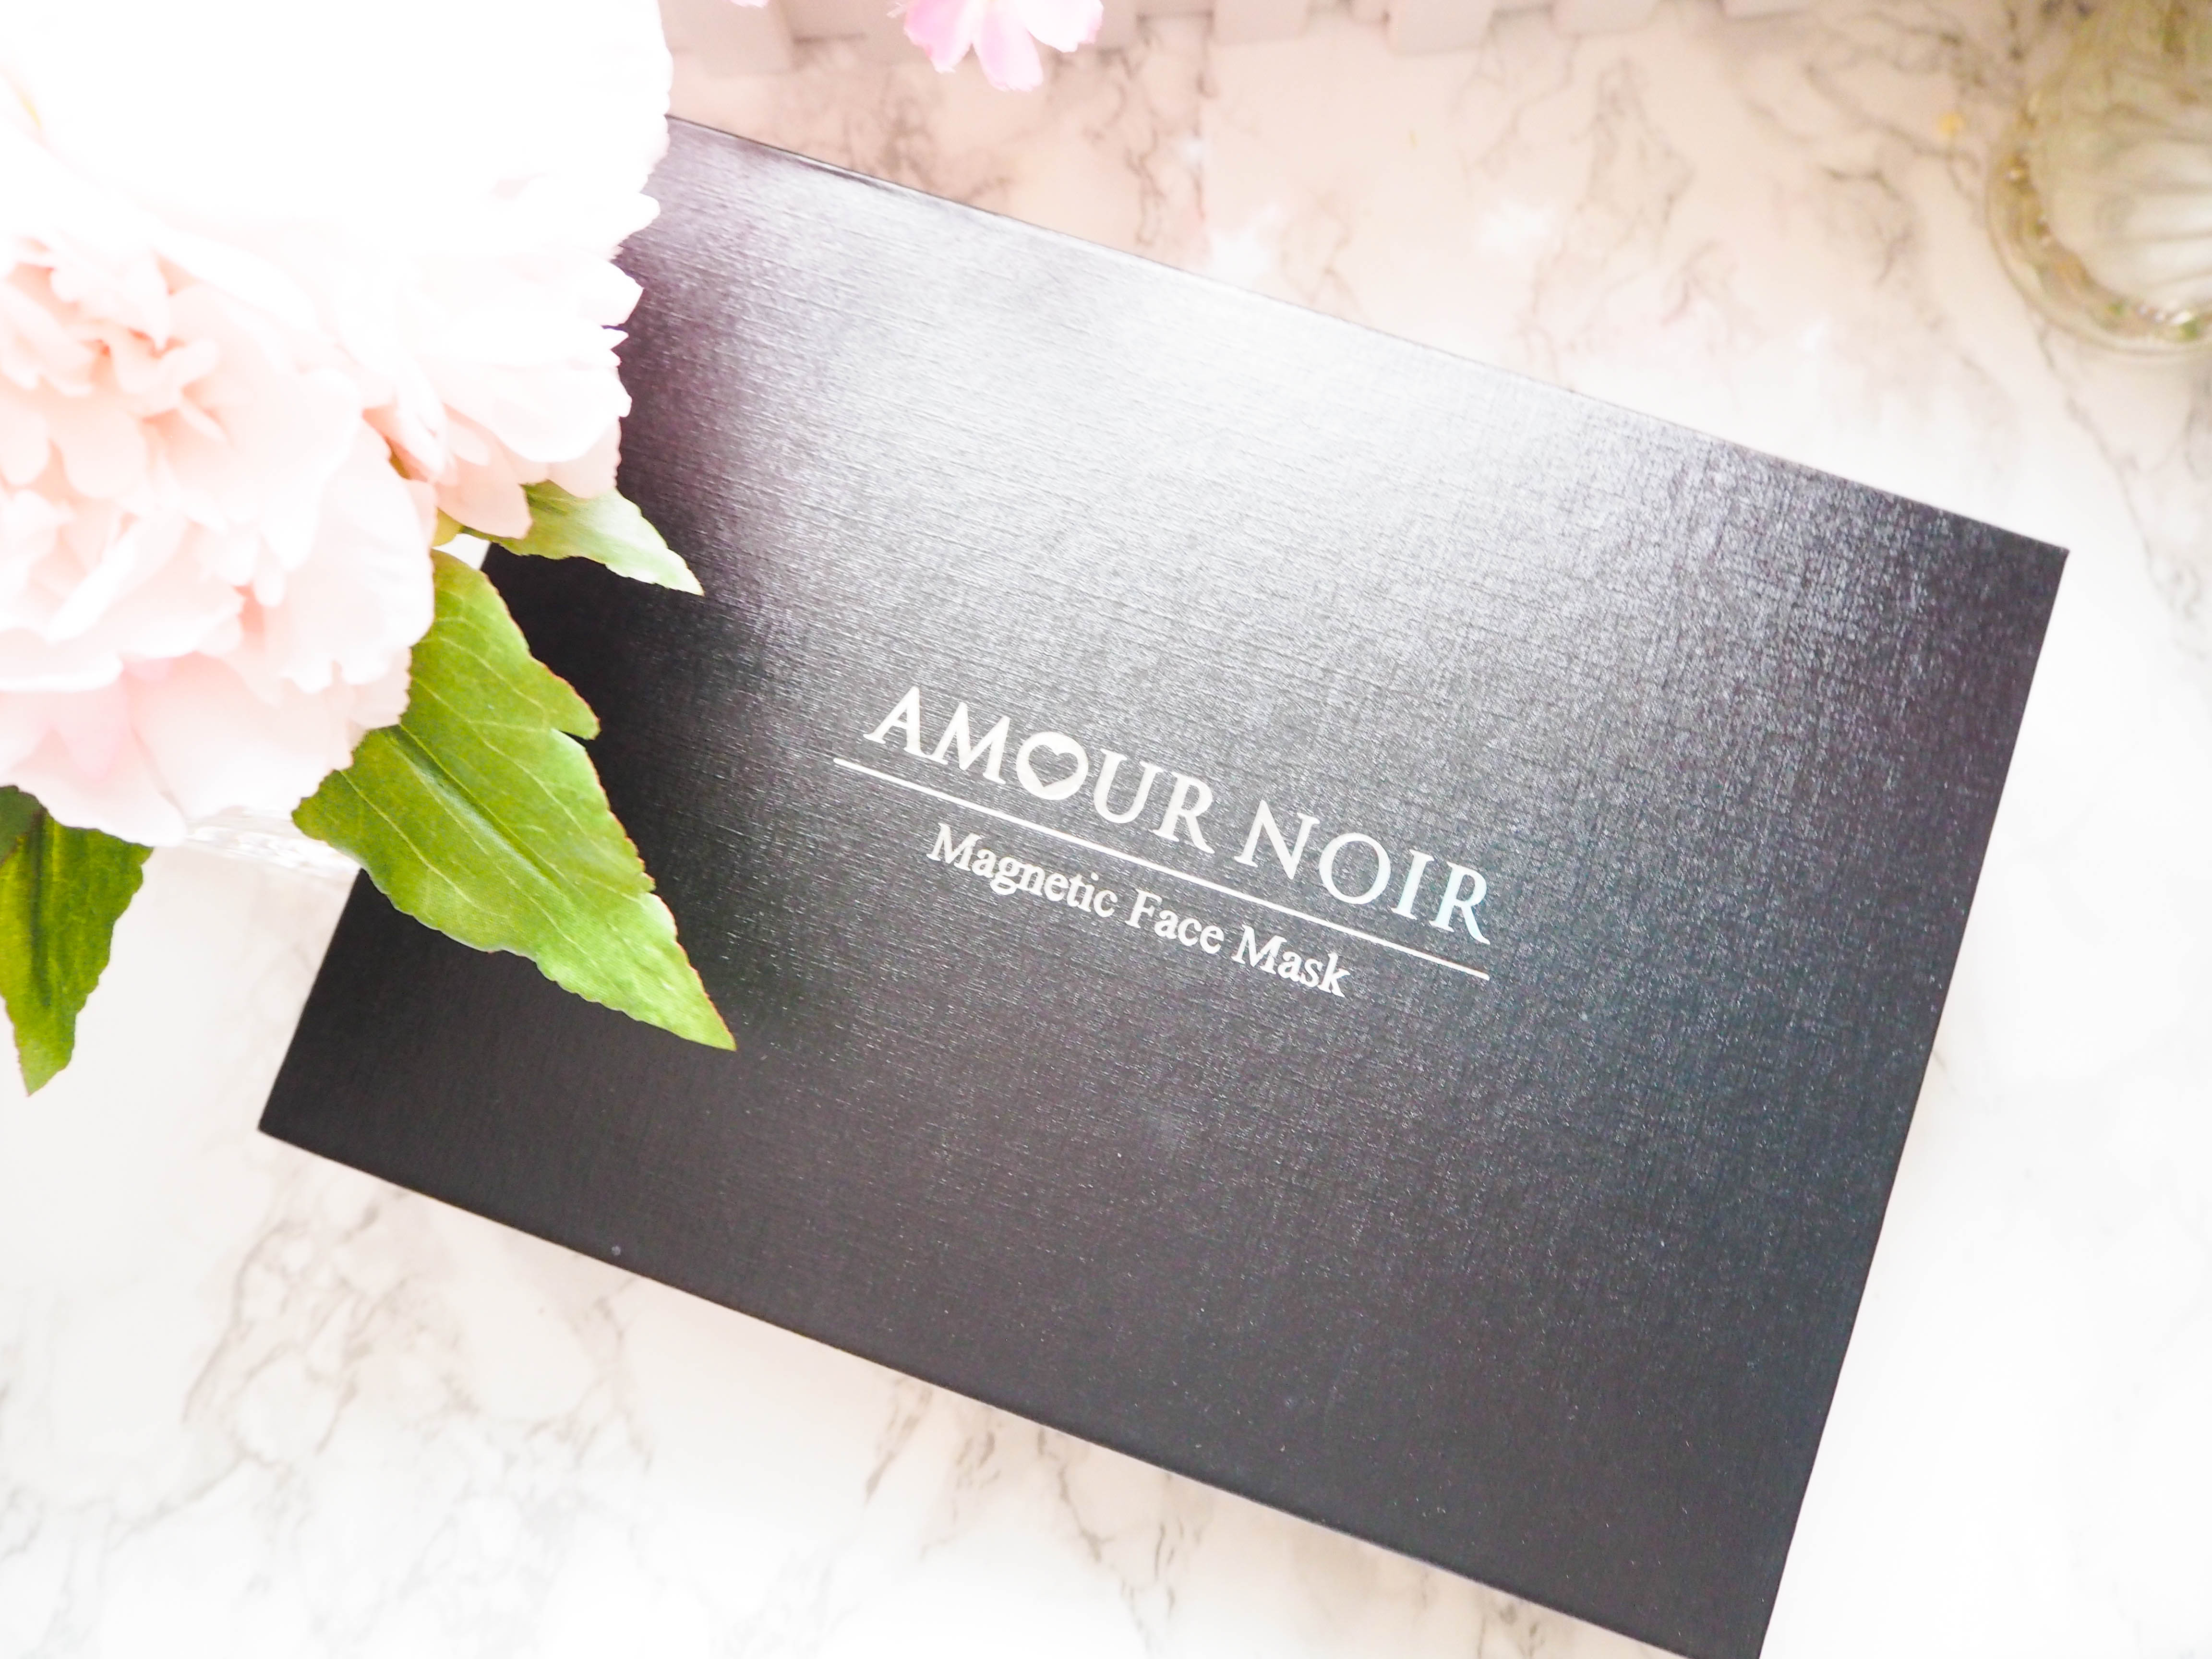 Amour Noir Magnetic Face Mask Review Beauty Geek Uk